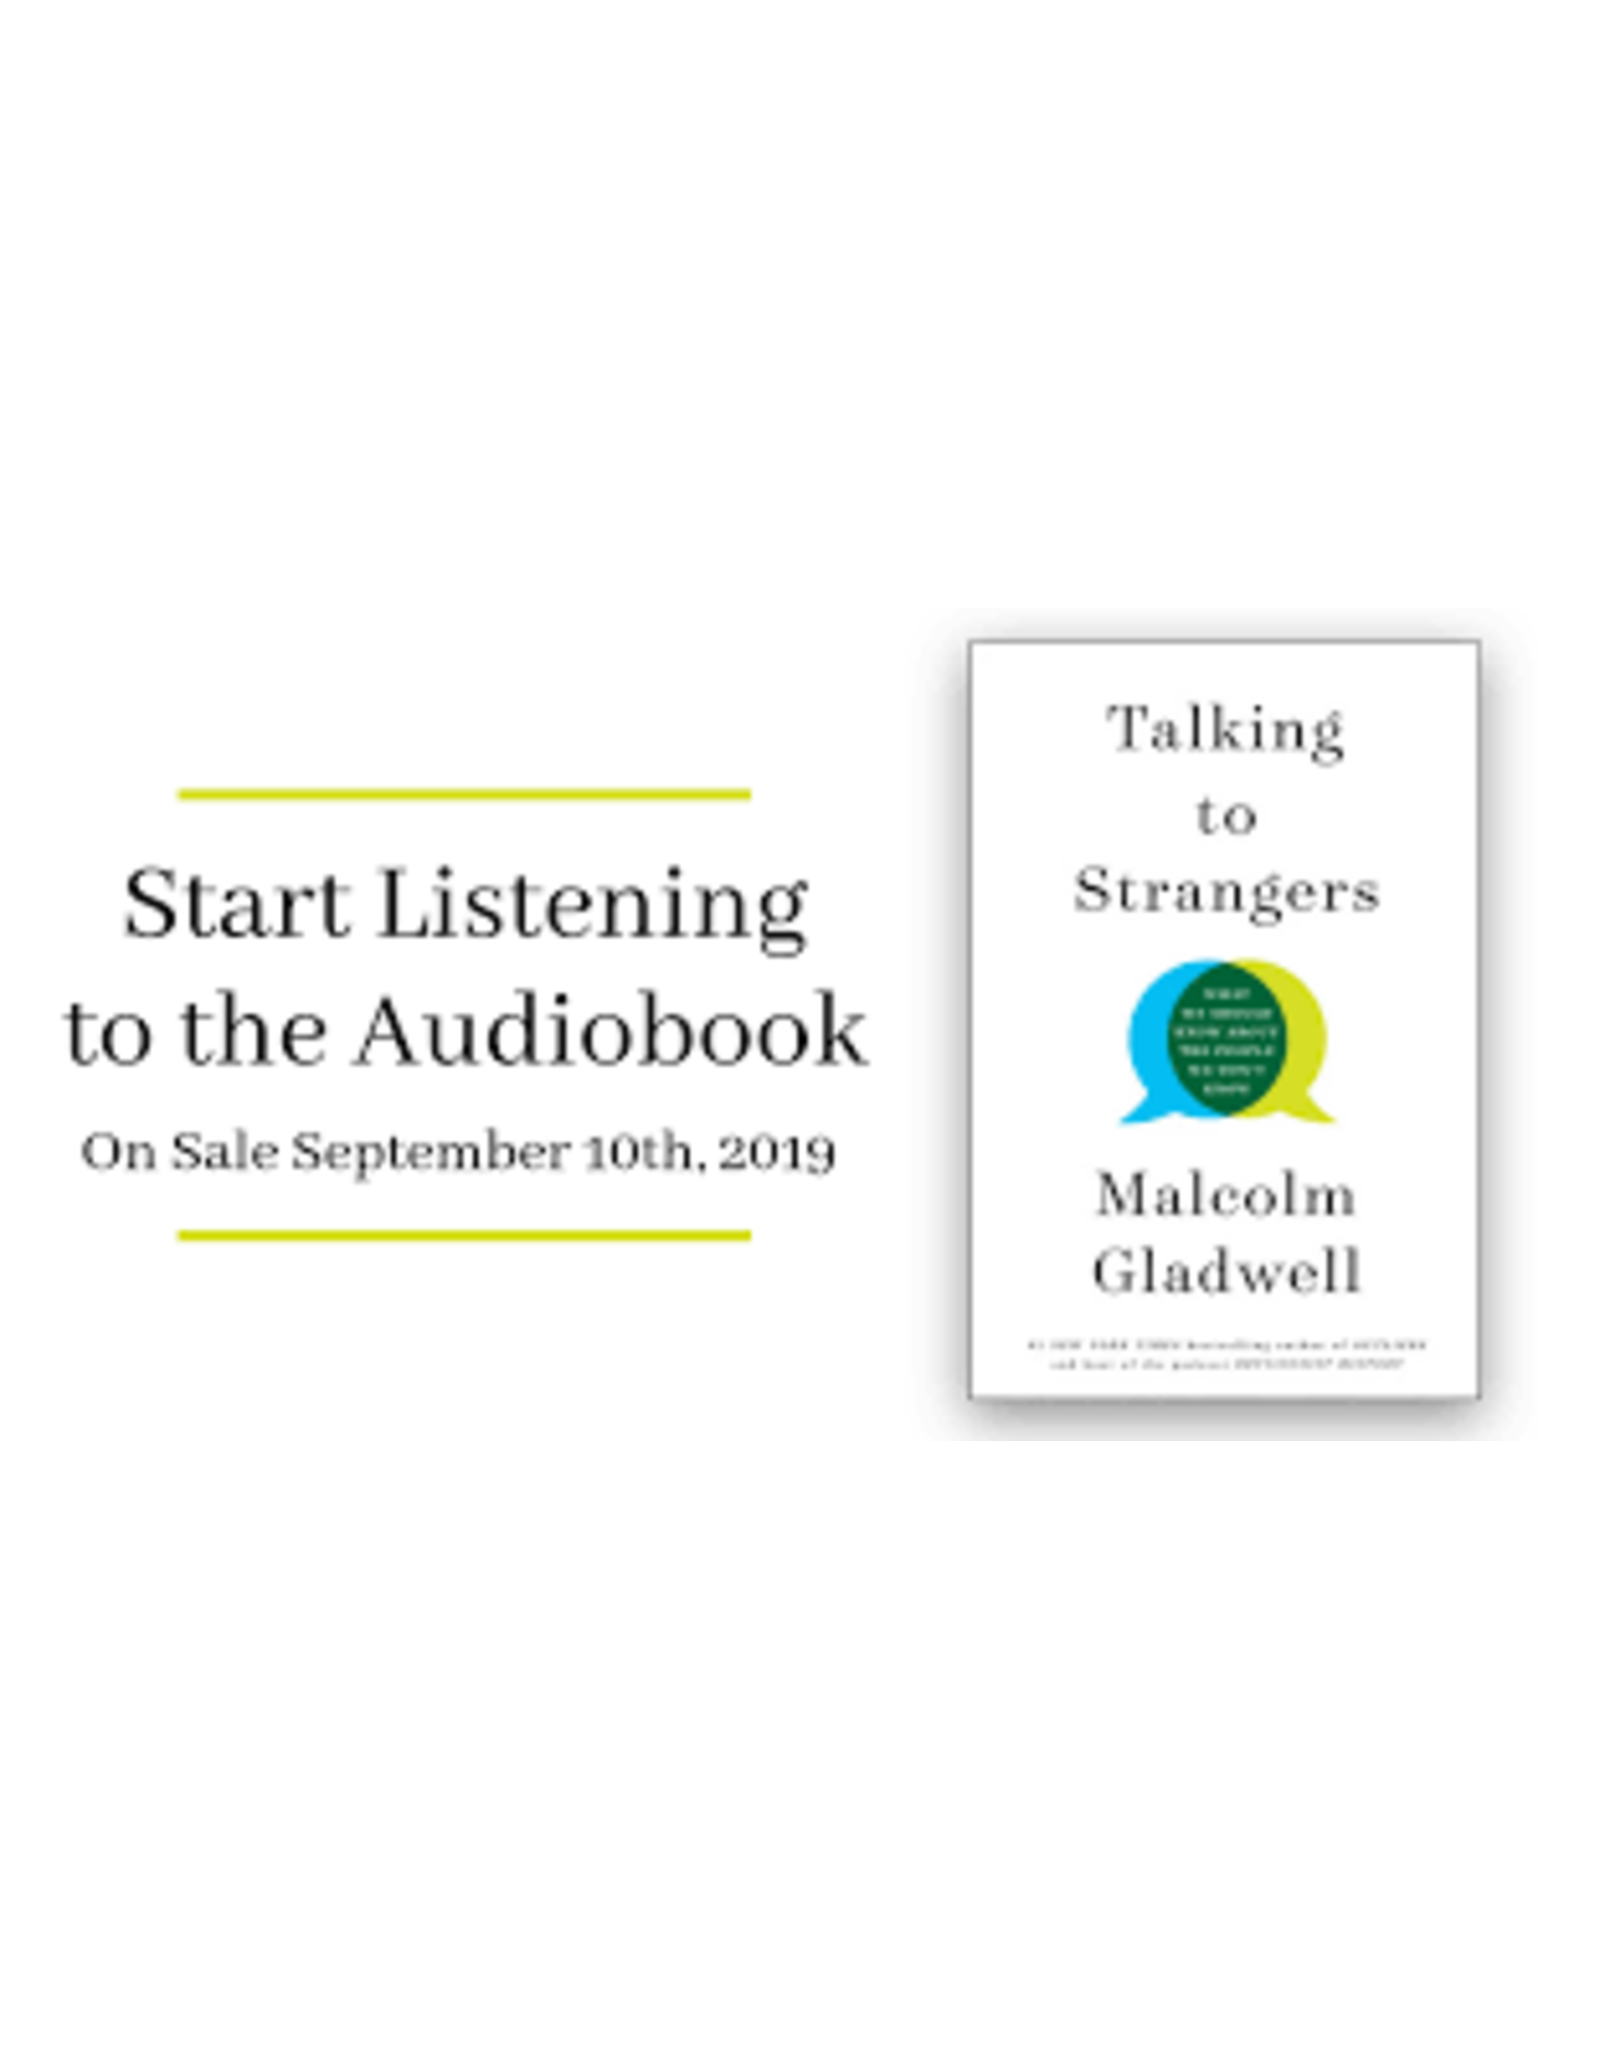 Books Talking to Strangers by Malcolm Gladwell